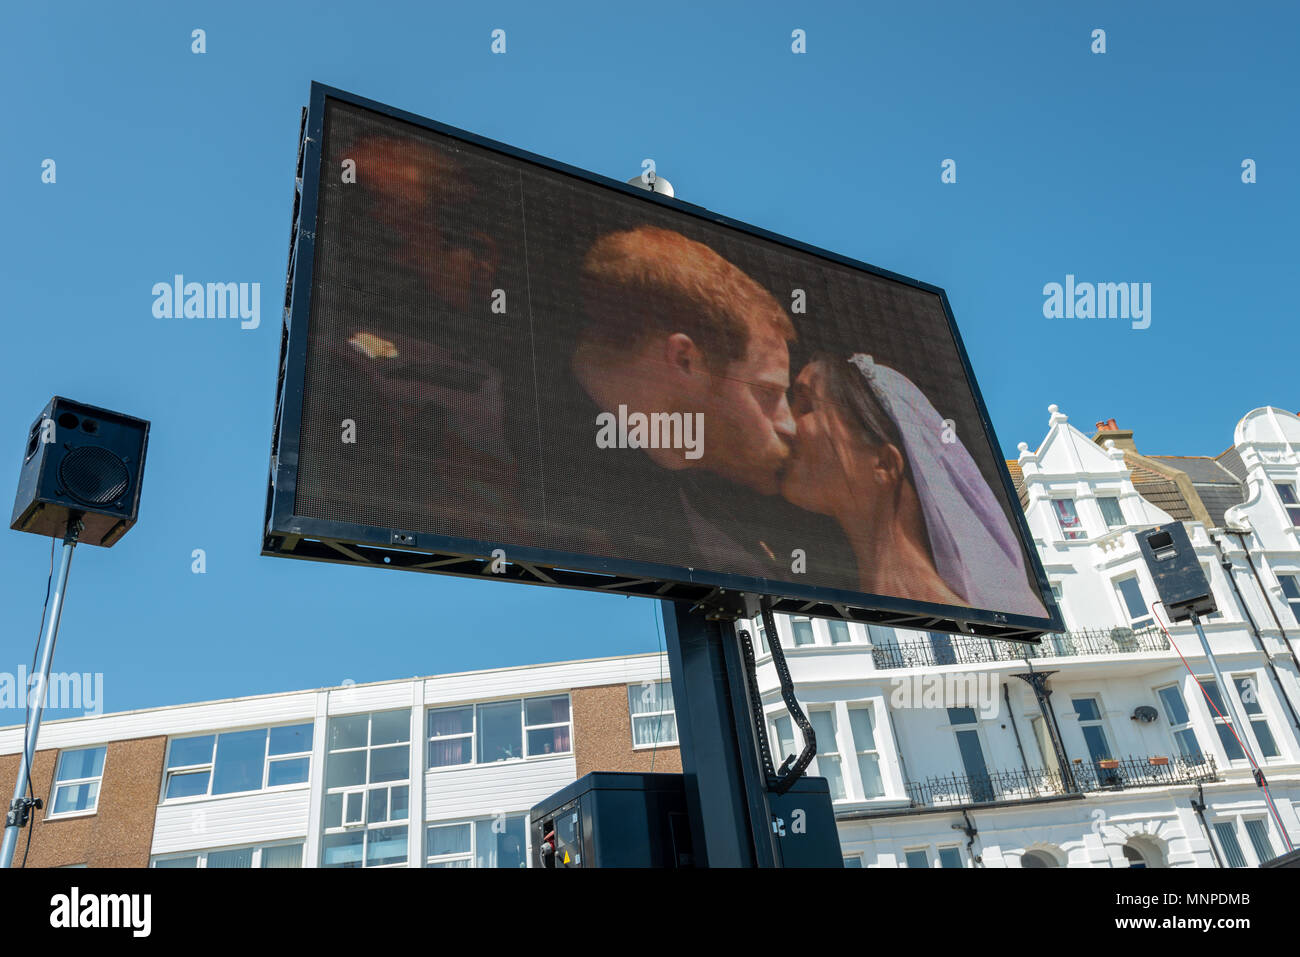 Displayed on a big screen on the seafront at a royal wedding celebration at Bexhill On Sea in East Sussex, England, Prince Harry and Meghan Markle kiss during their Royal wedding. Stock Photo